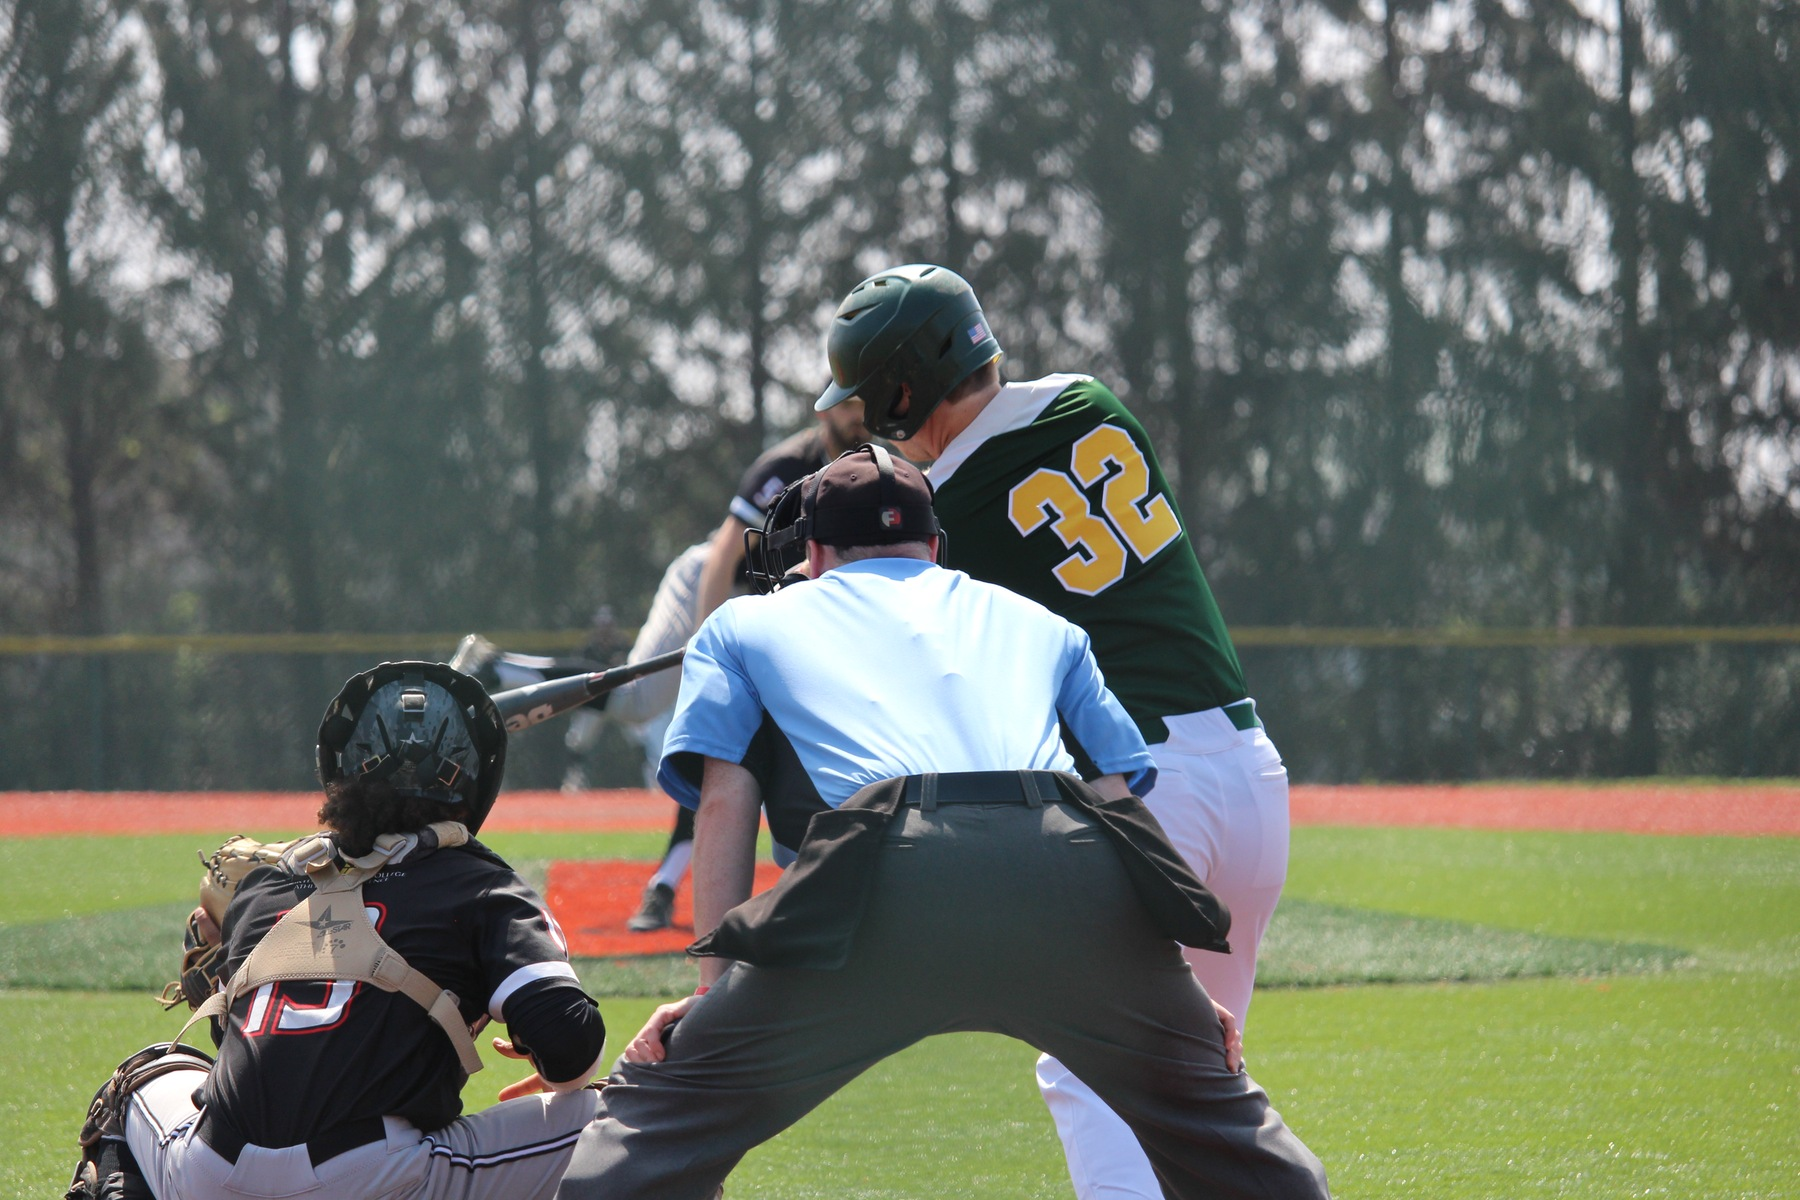 Cougars Swat Hornets To Earn Doubleheader Sweep